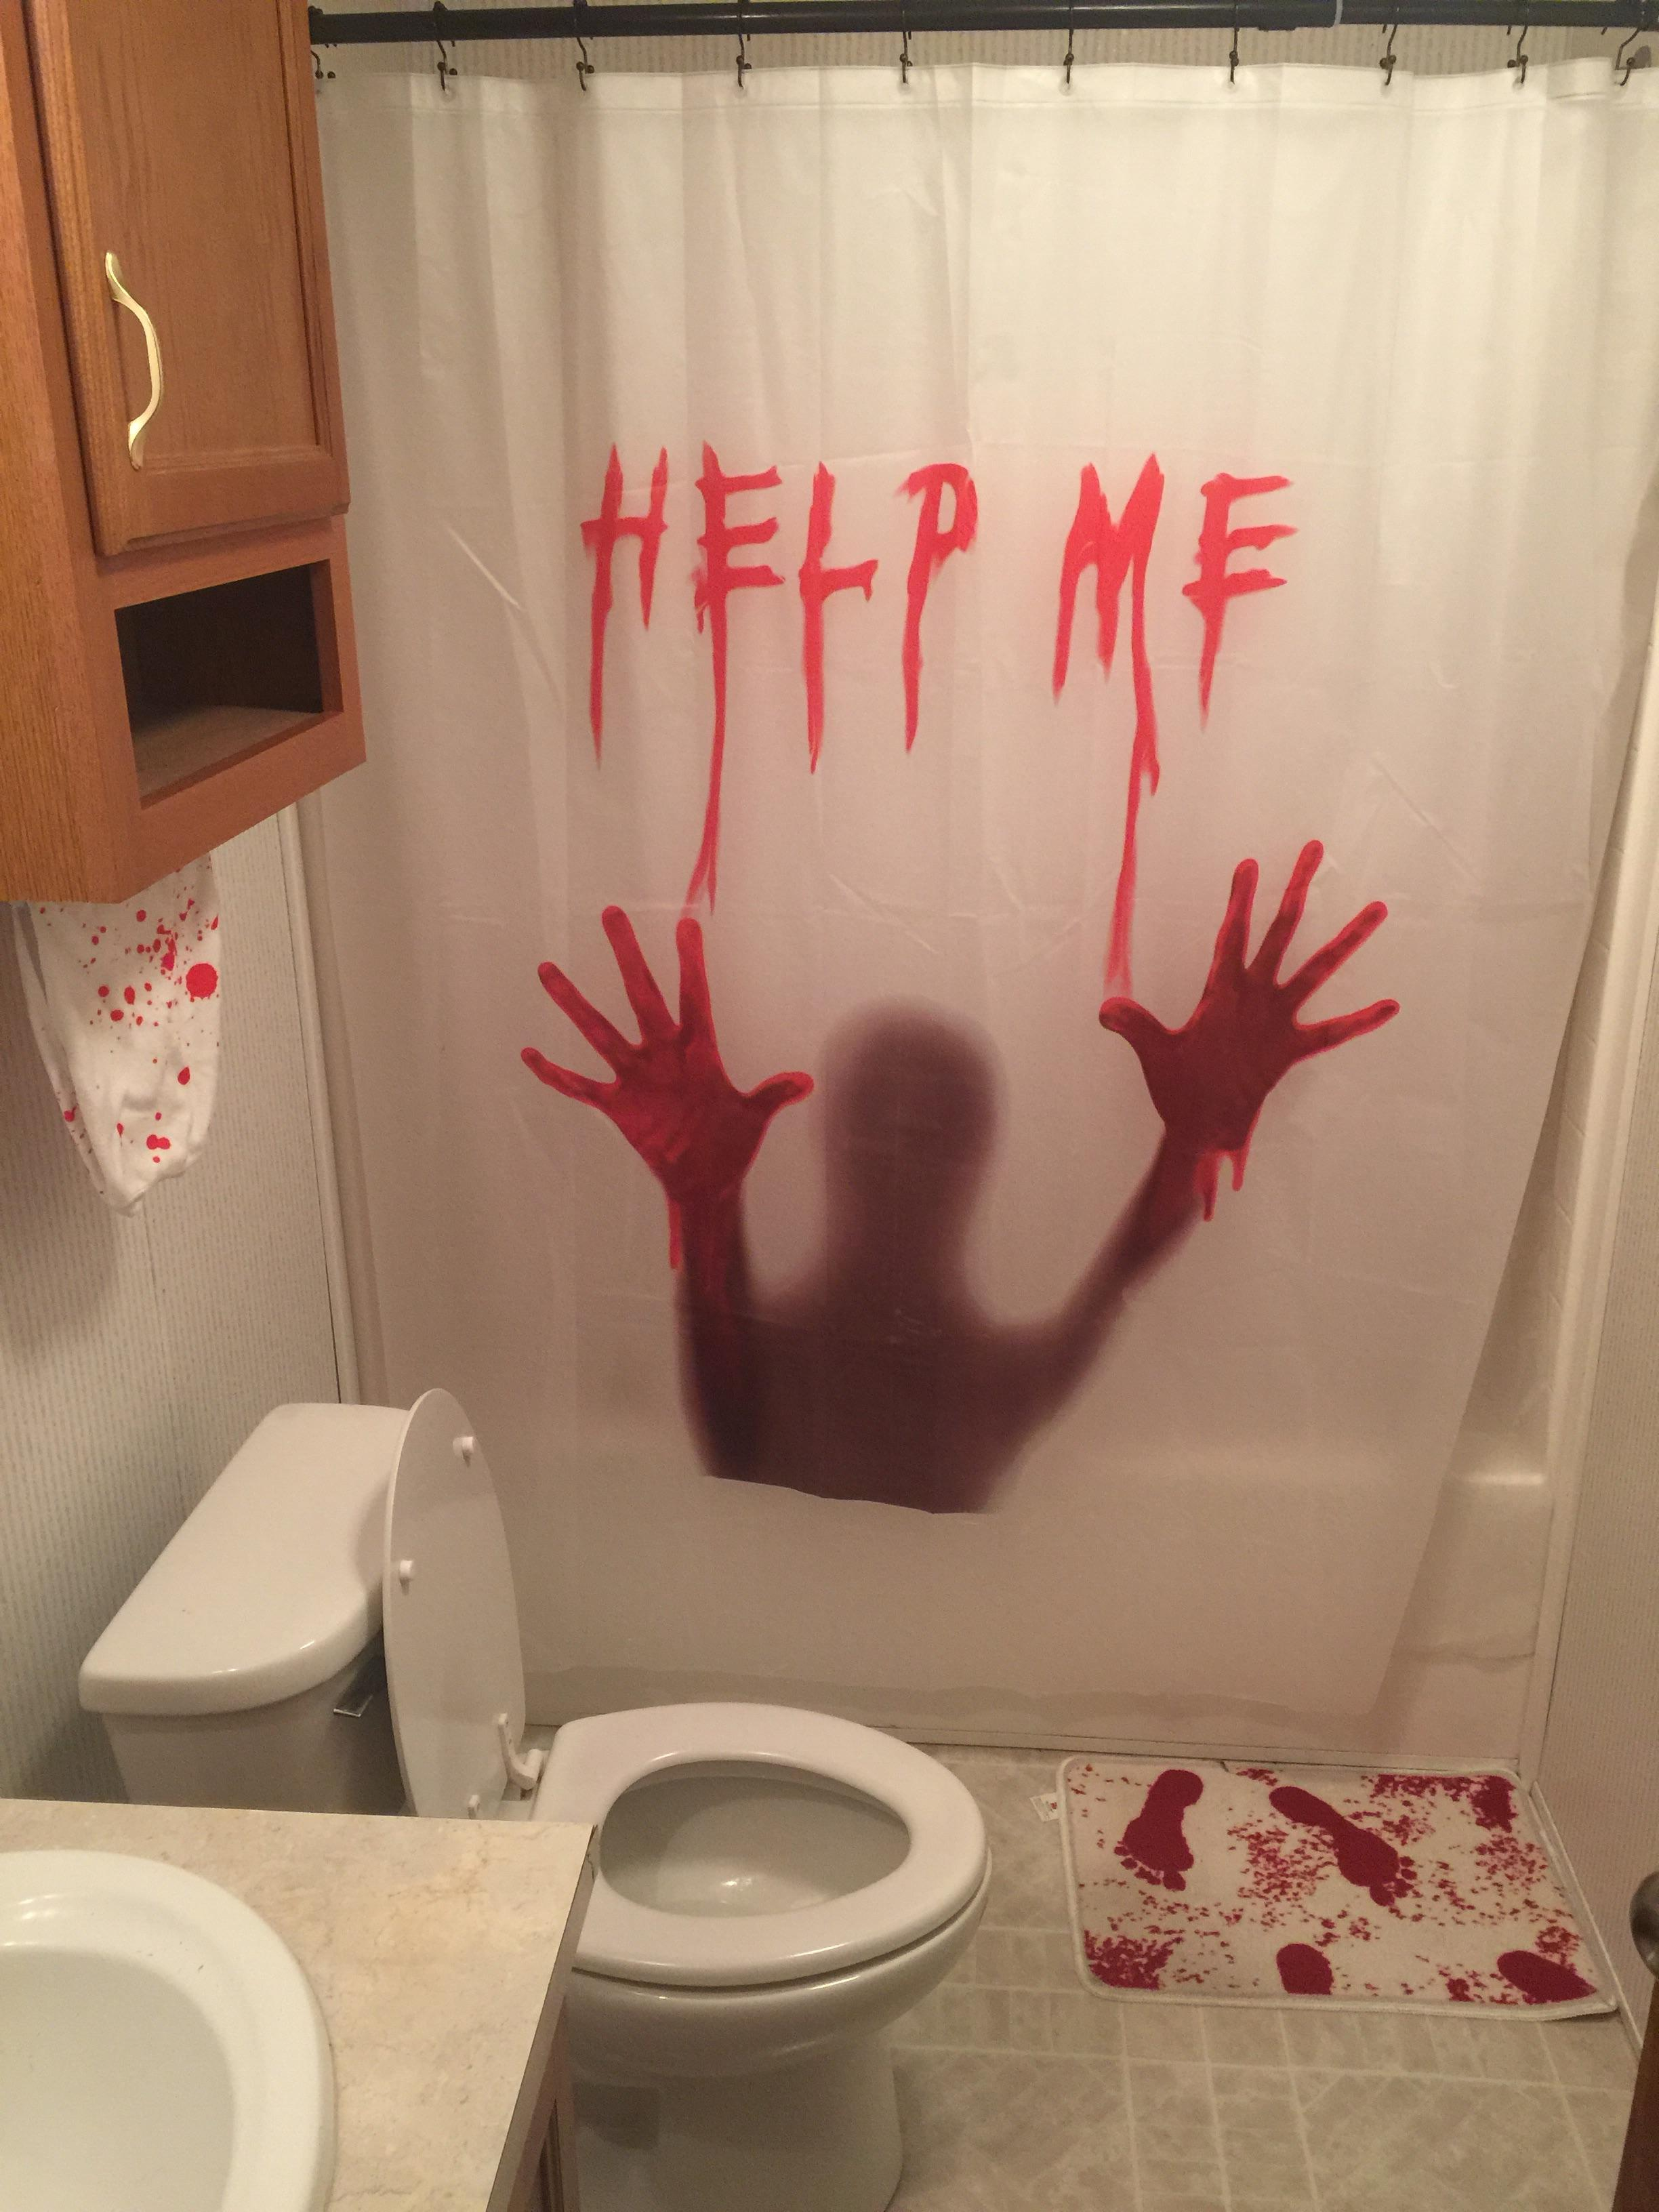 My wife said I could decorate the guest bathroom as my own. Multiple screams have ensued.